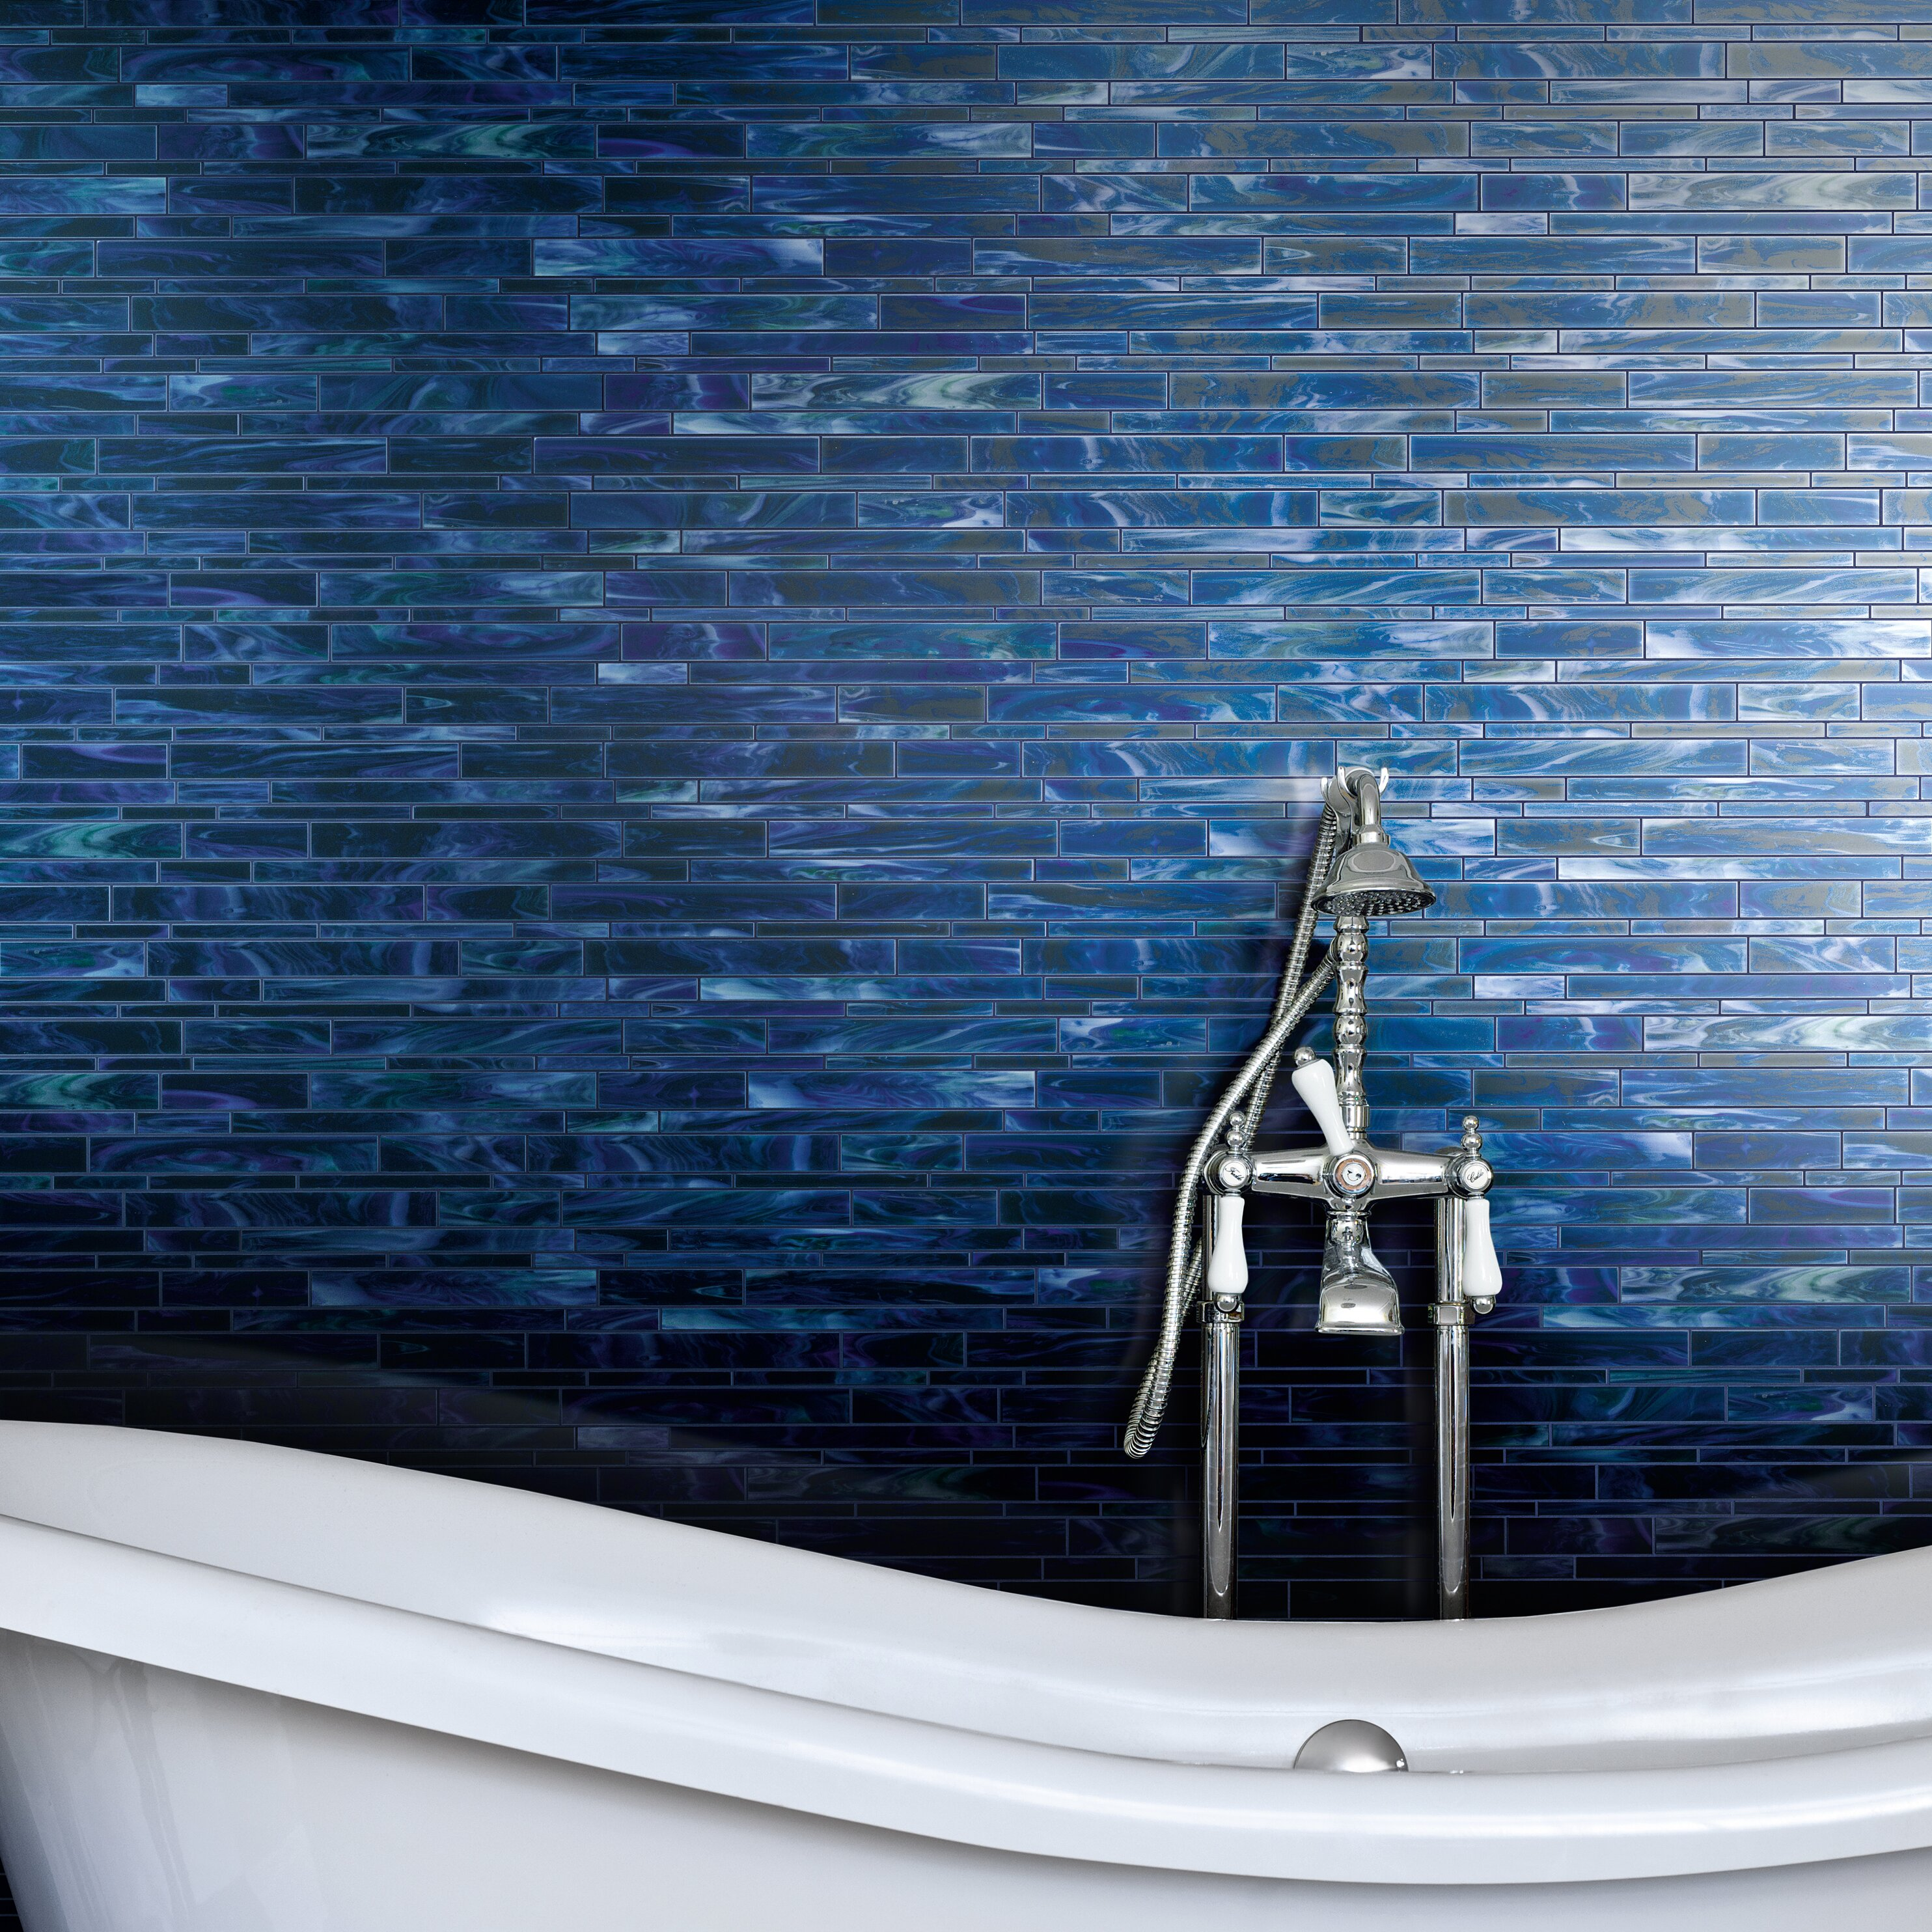 Marazzi catwalk random sized glass mosaic tile in blue for Catwalk flooring